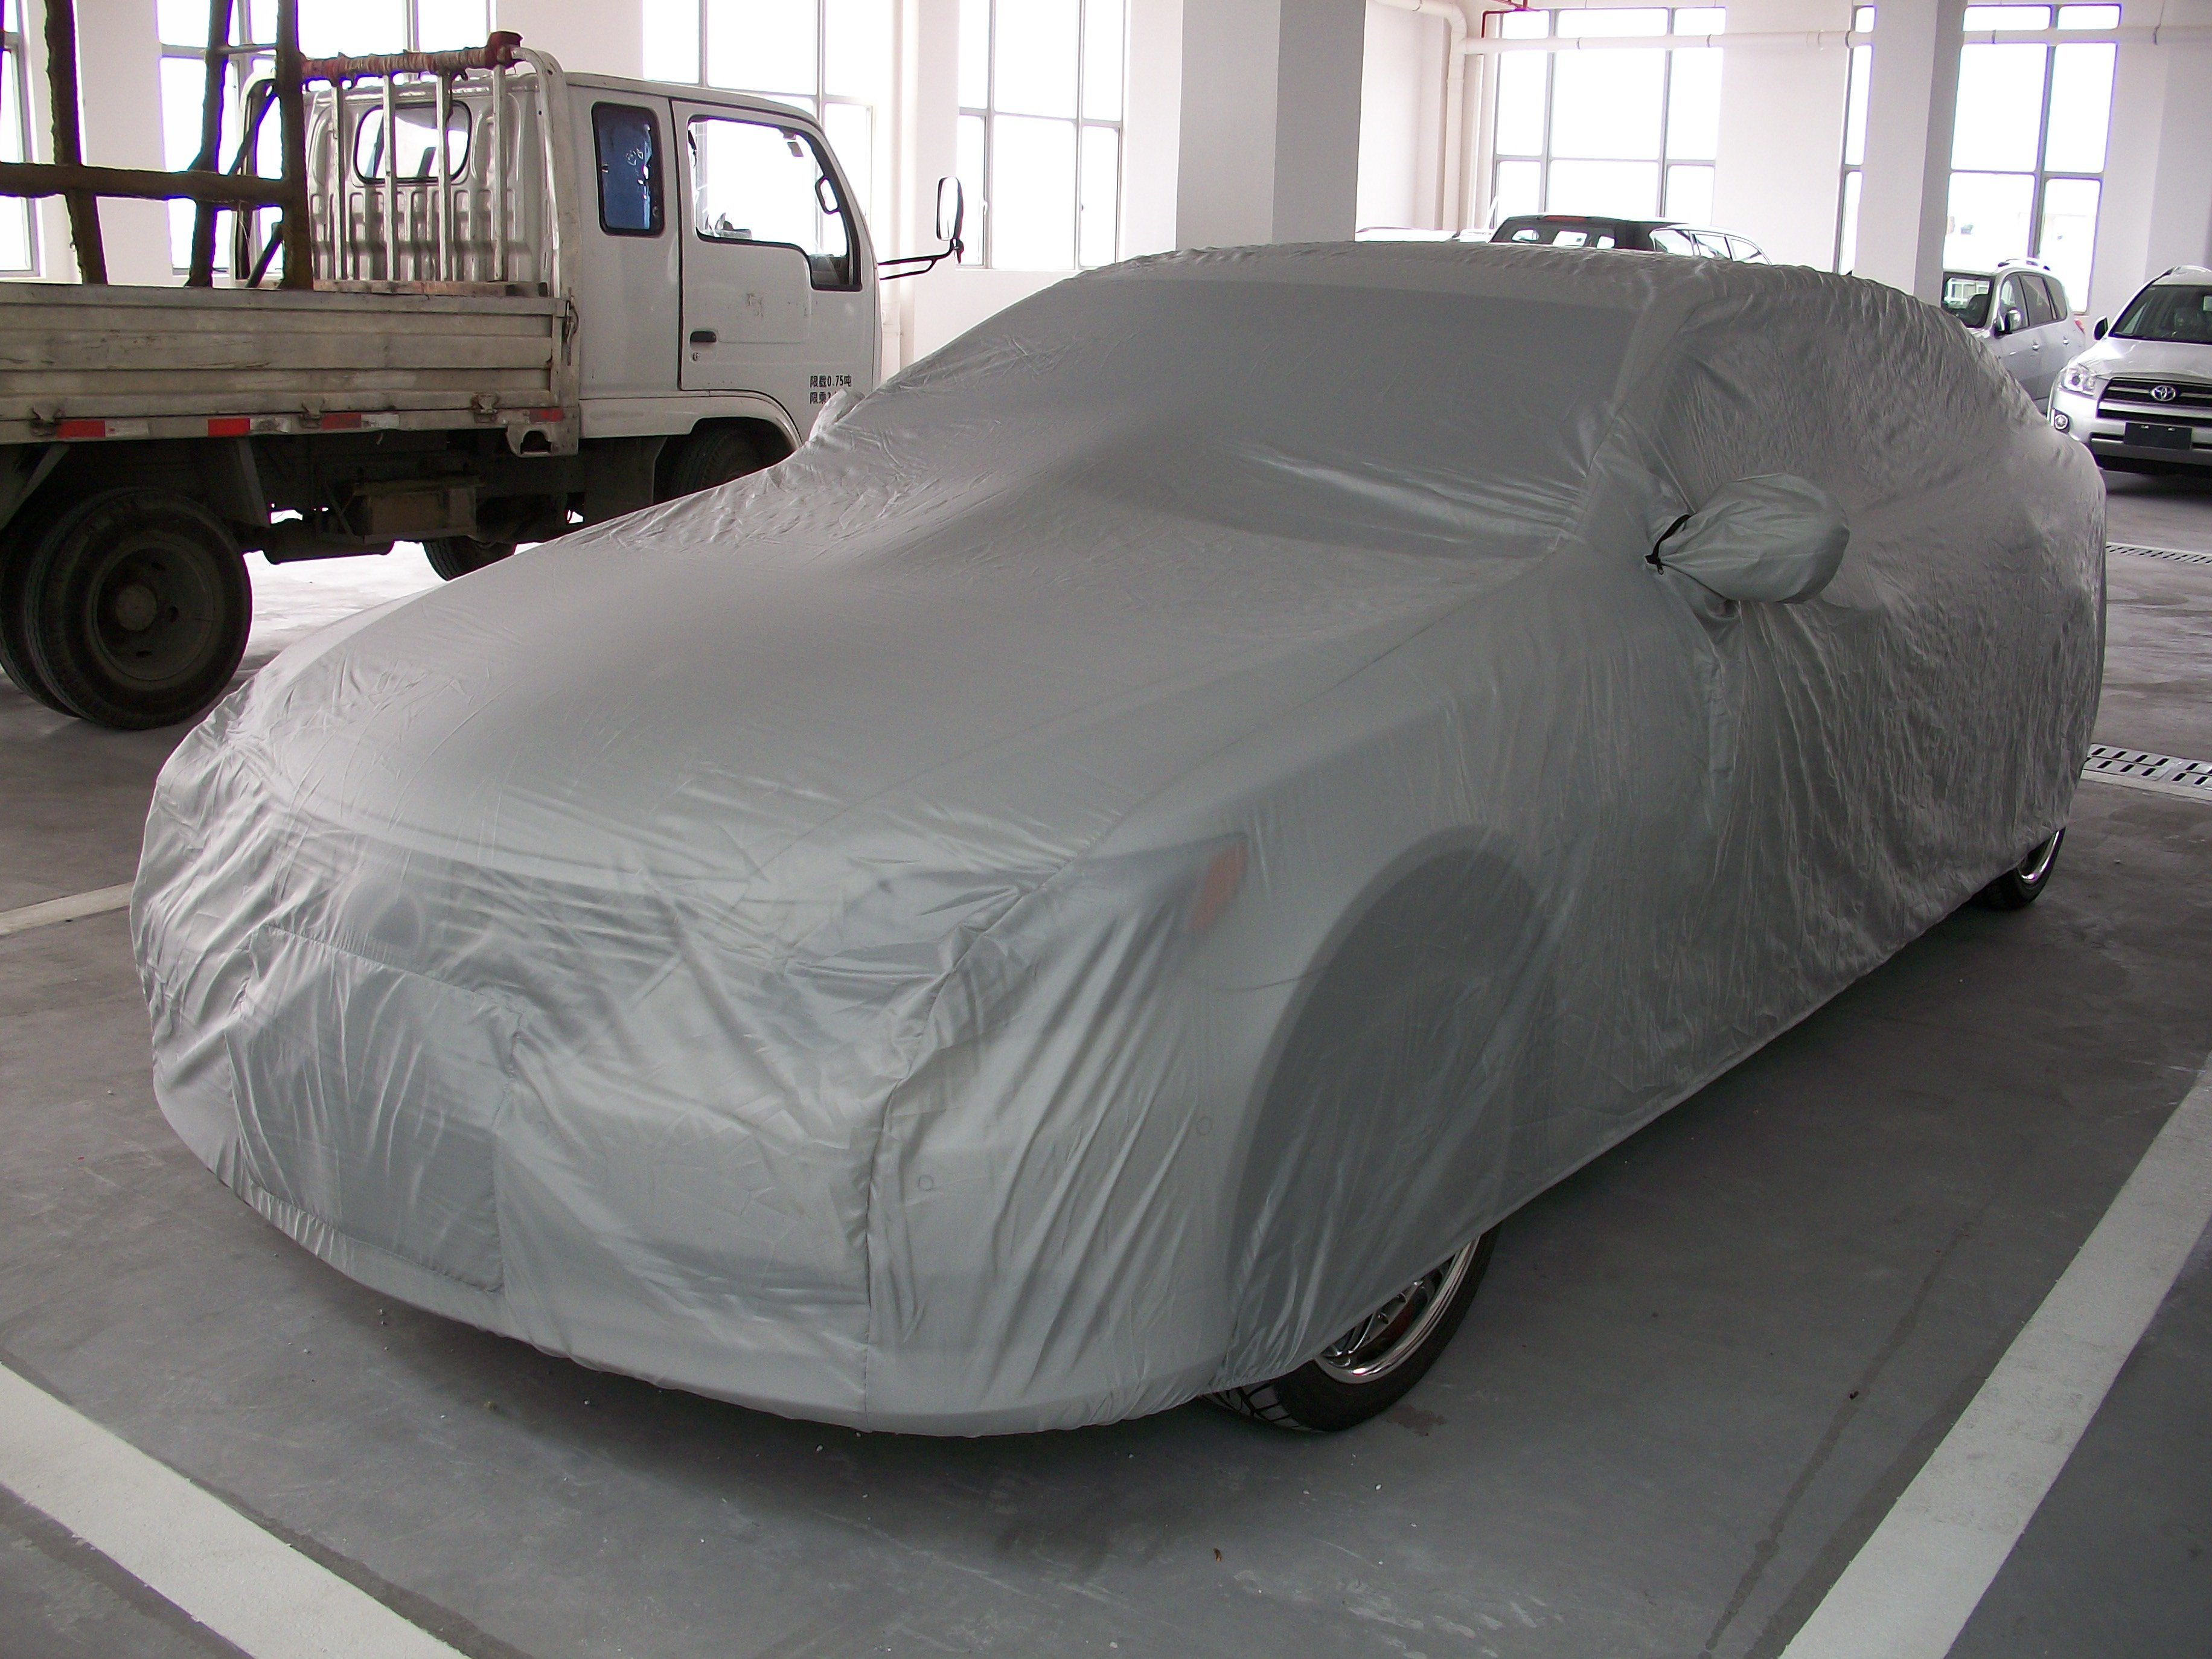 Can Car Covers Scratch or Damage Car Paint?